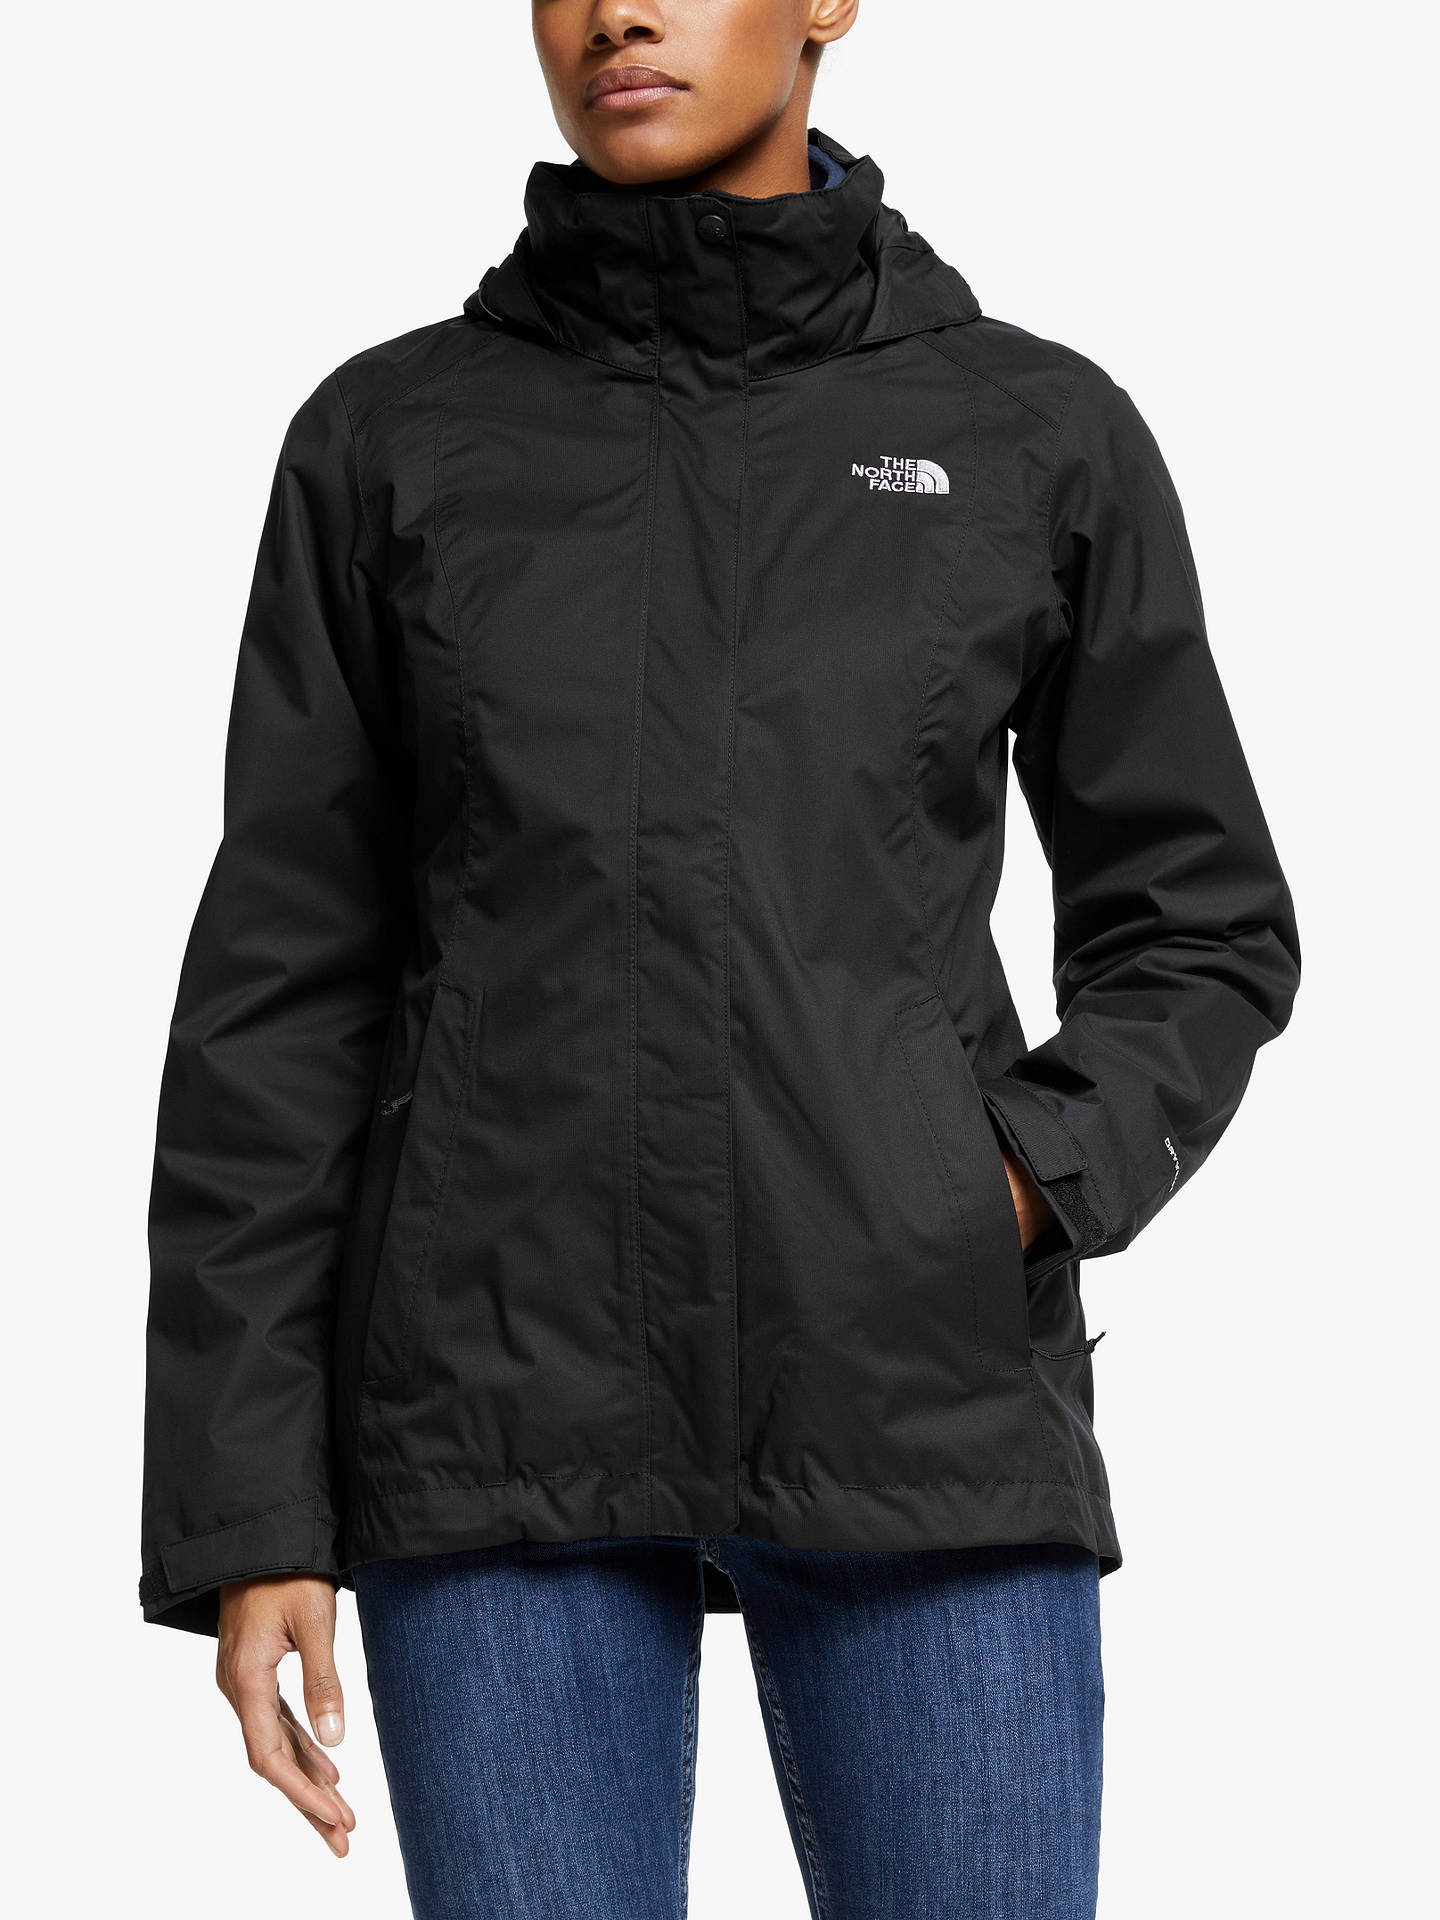 6d724a97d The North Face Evolve II Triclimate 3-in-1 Waterproof Women's Jacket, Black